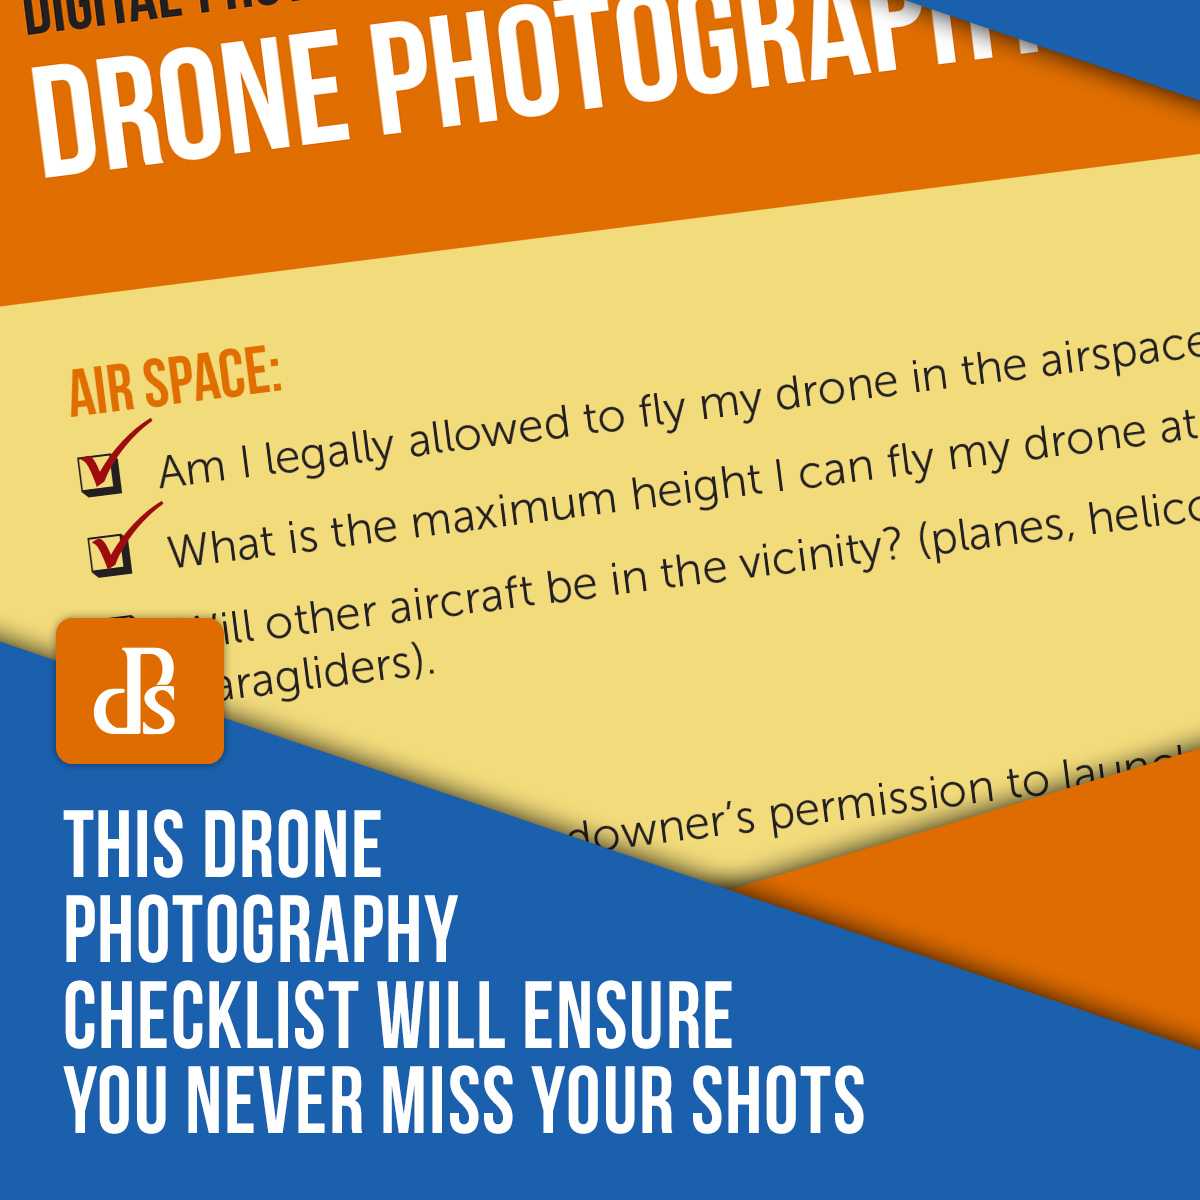 https://i0.wp.com/digital-photography-school.com/wp-content/uploads/2020/07/dps-drone-photography-checklist.jpg?ssl=1